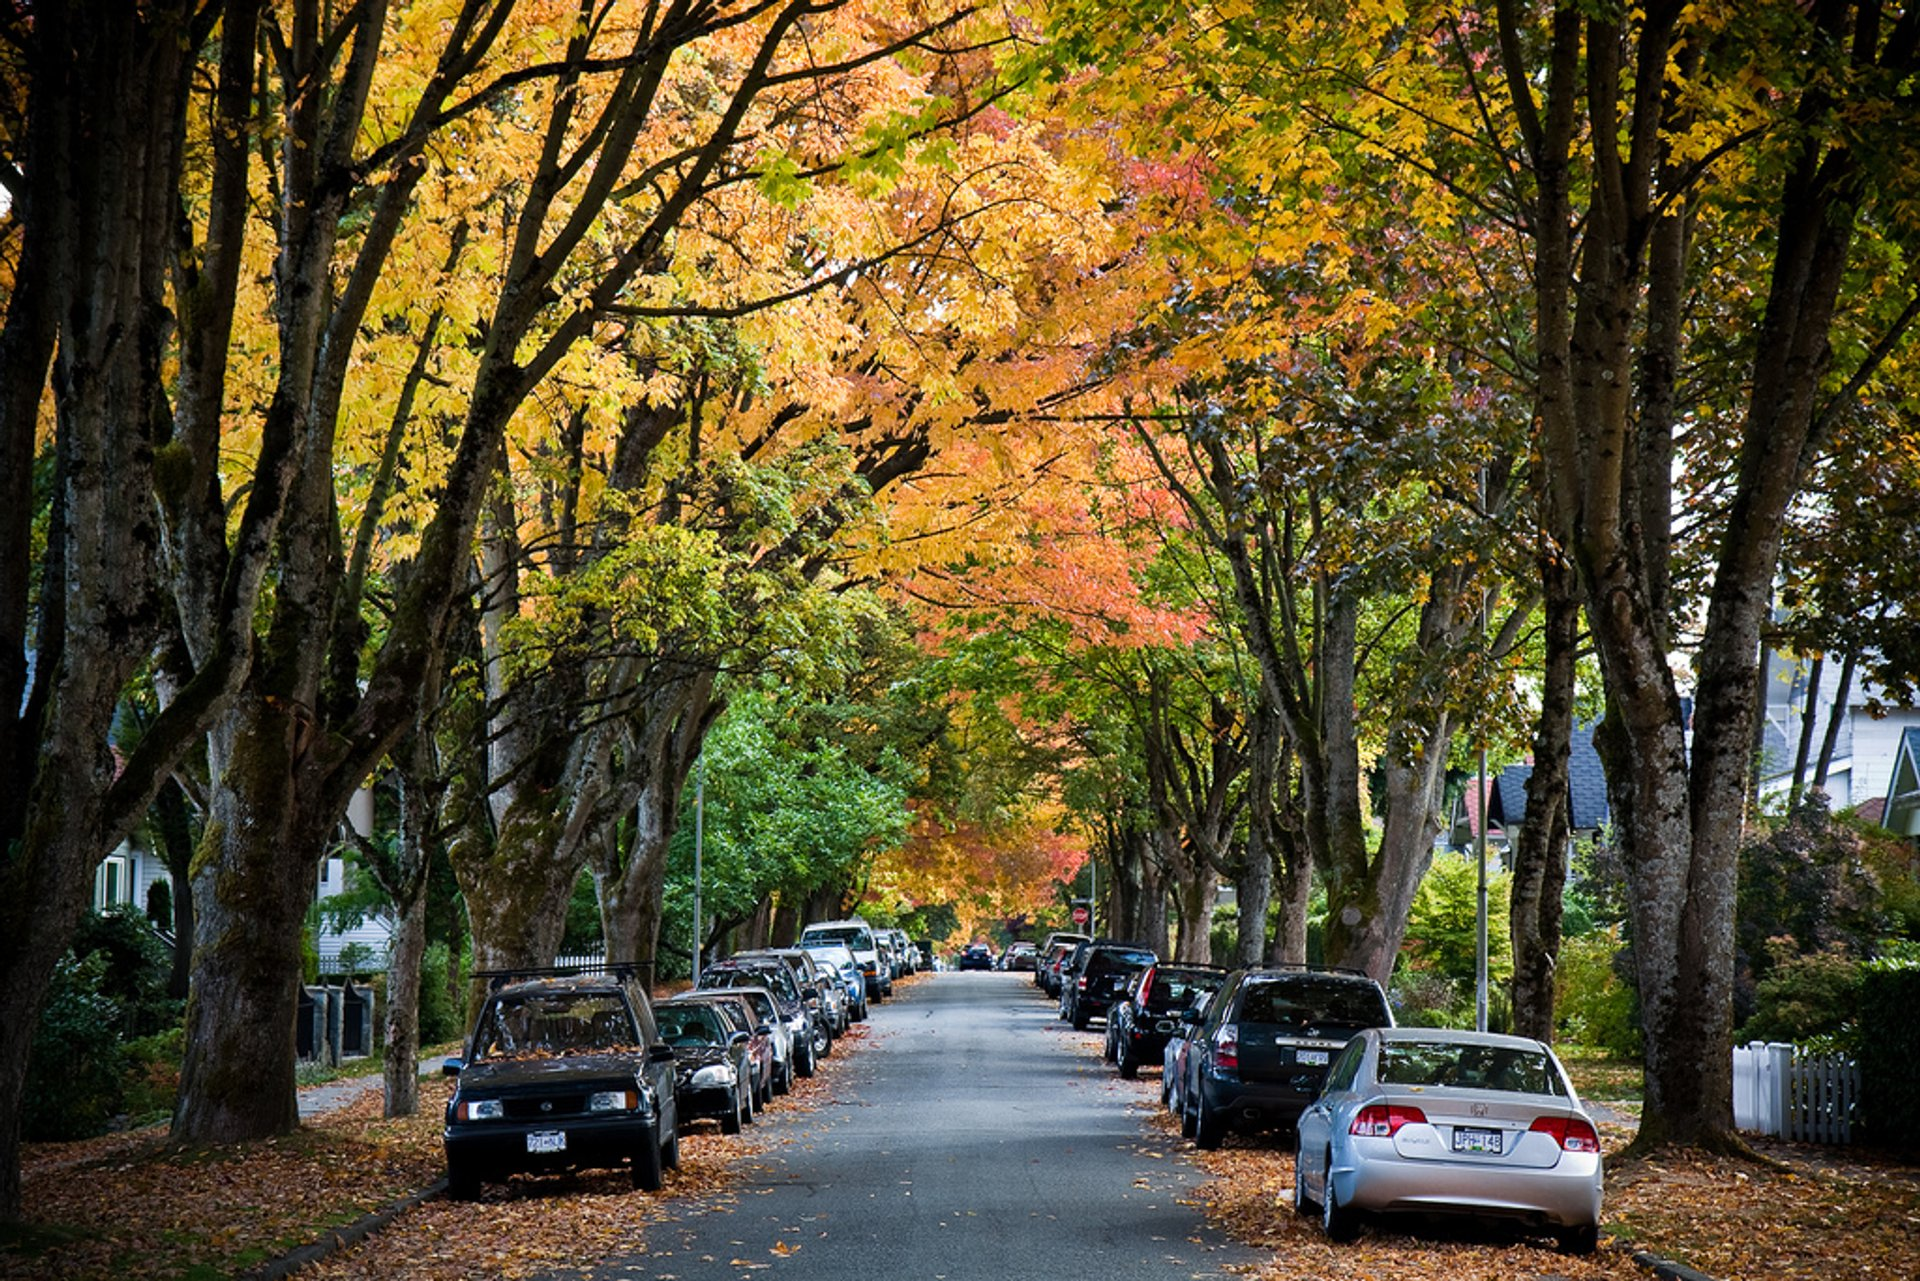 Autumn in Vancouver 2020 - Best Time